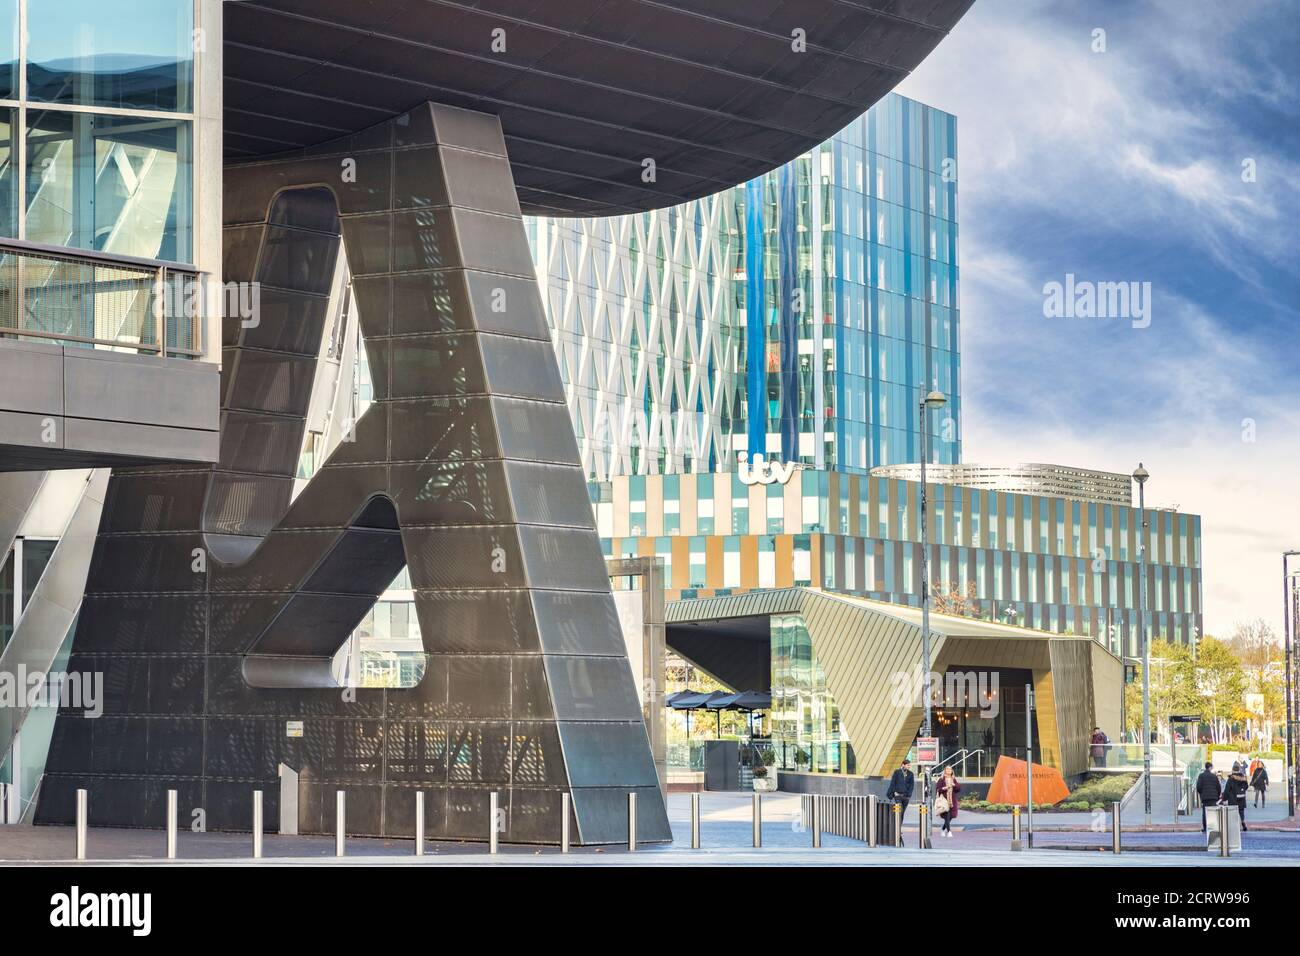 2. November 2018: Salford Quays, Manchester, Großbritannien - The Lowry, The Gallery and Museum Complex Celebrating the Life of L__LW_AT__S. Lowry. Es wurde von Jam entworfen Stockfoto